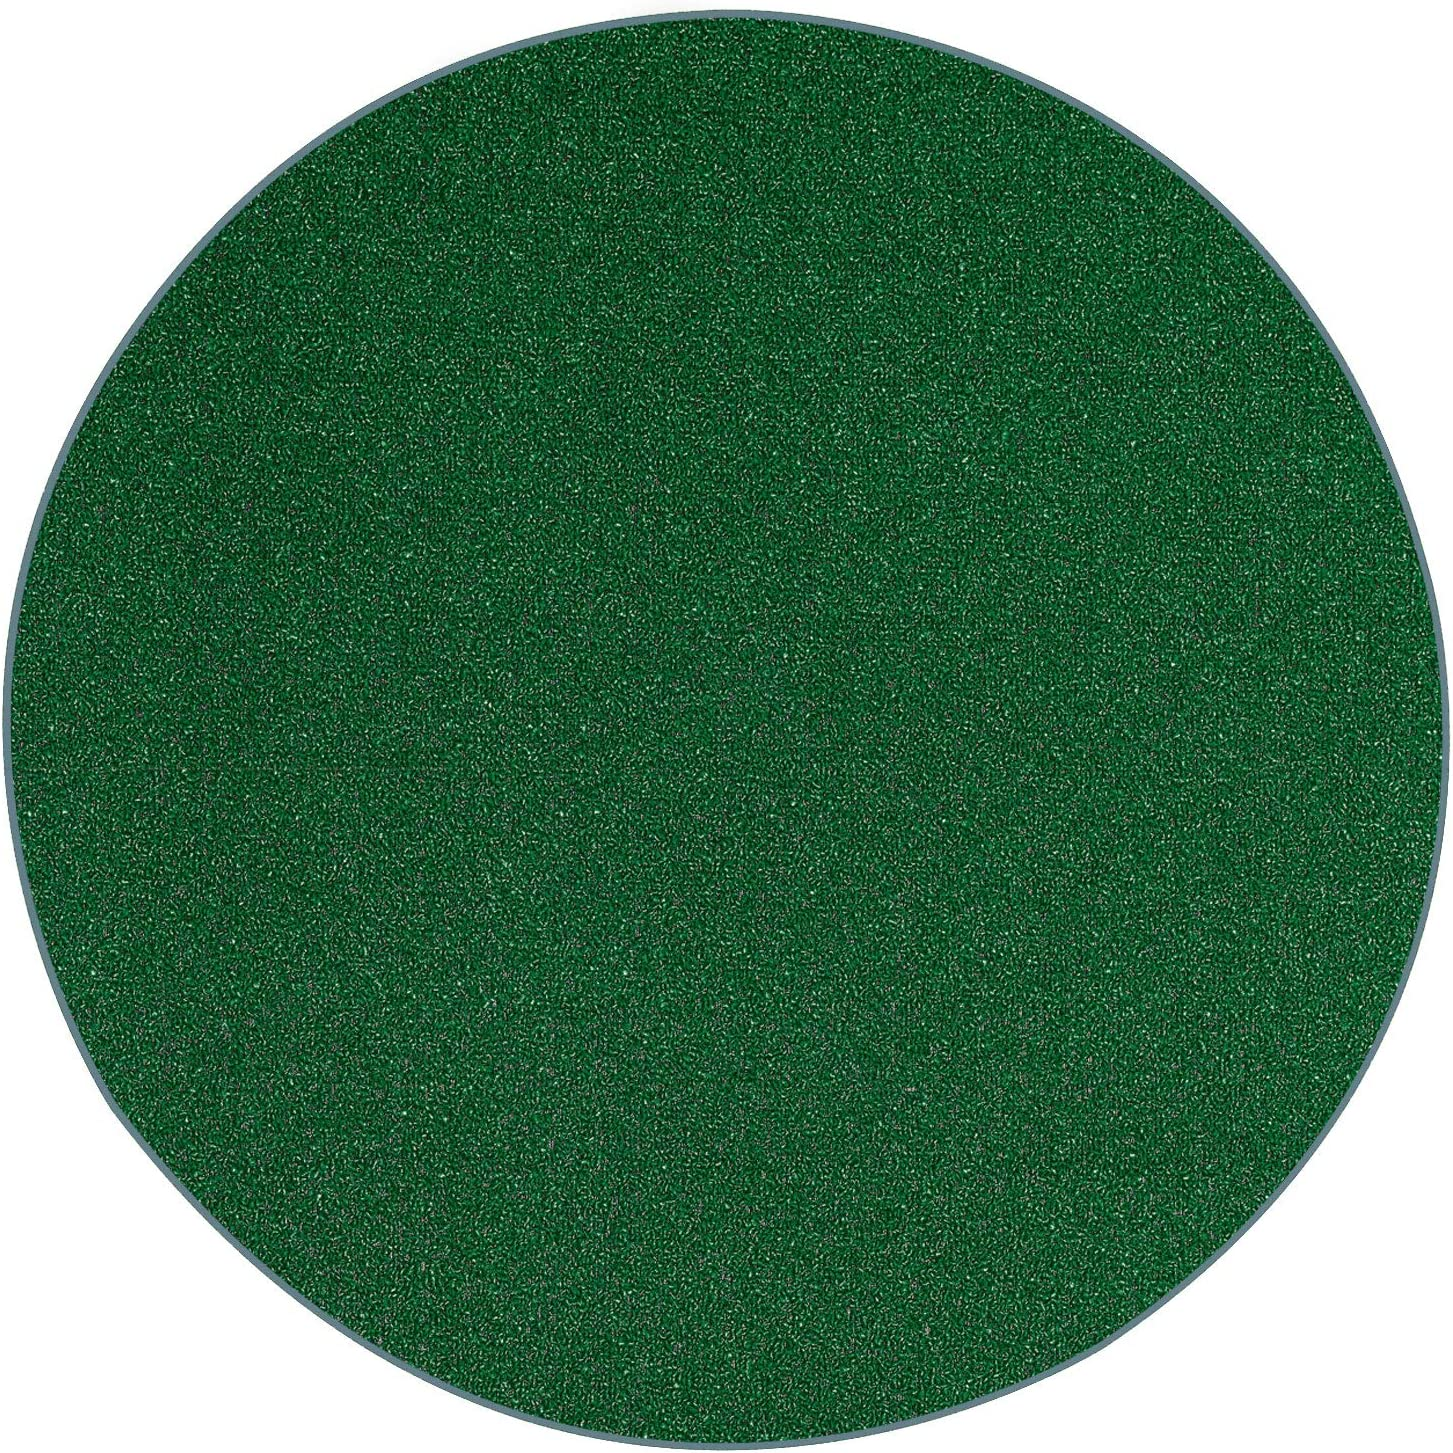 Outdoor gift Artificial Turf Green Area Rugs Ba OFFicial mail order Non Premium with Skid